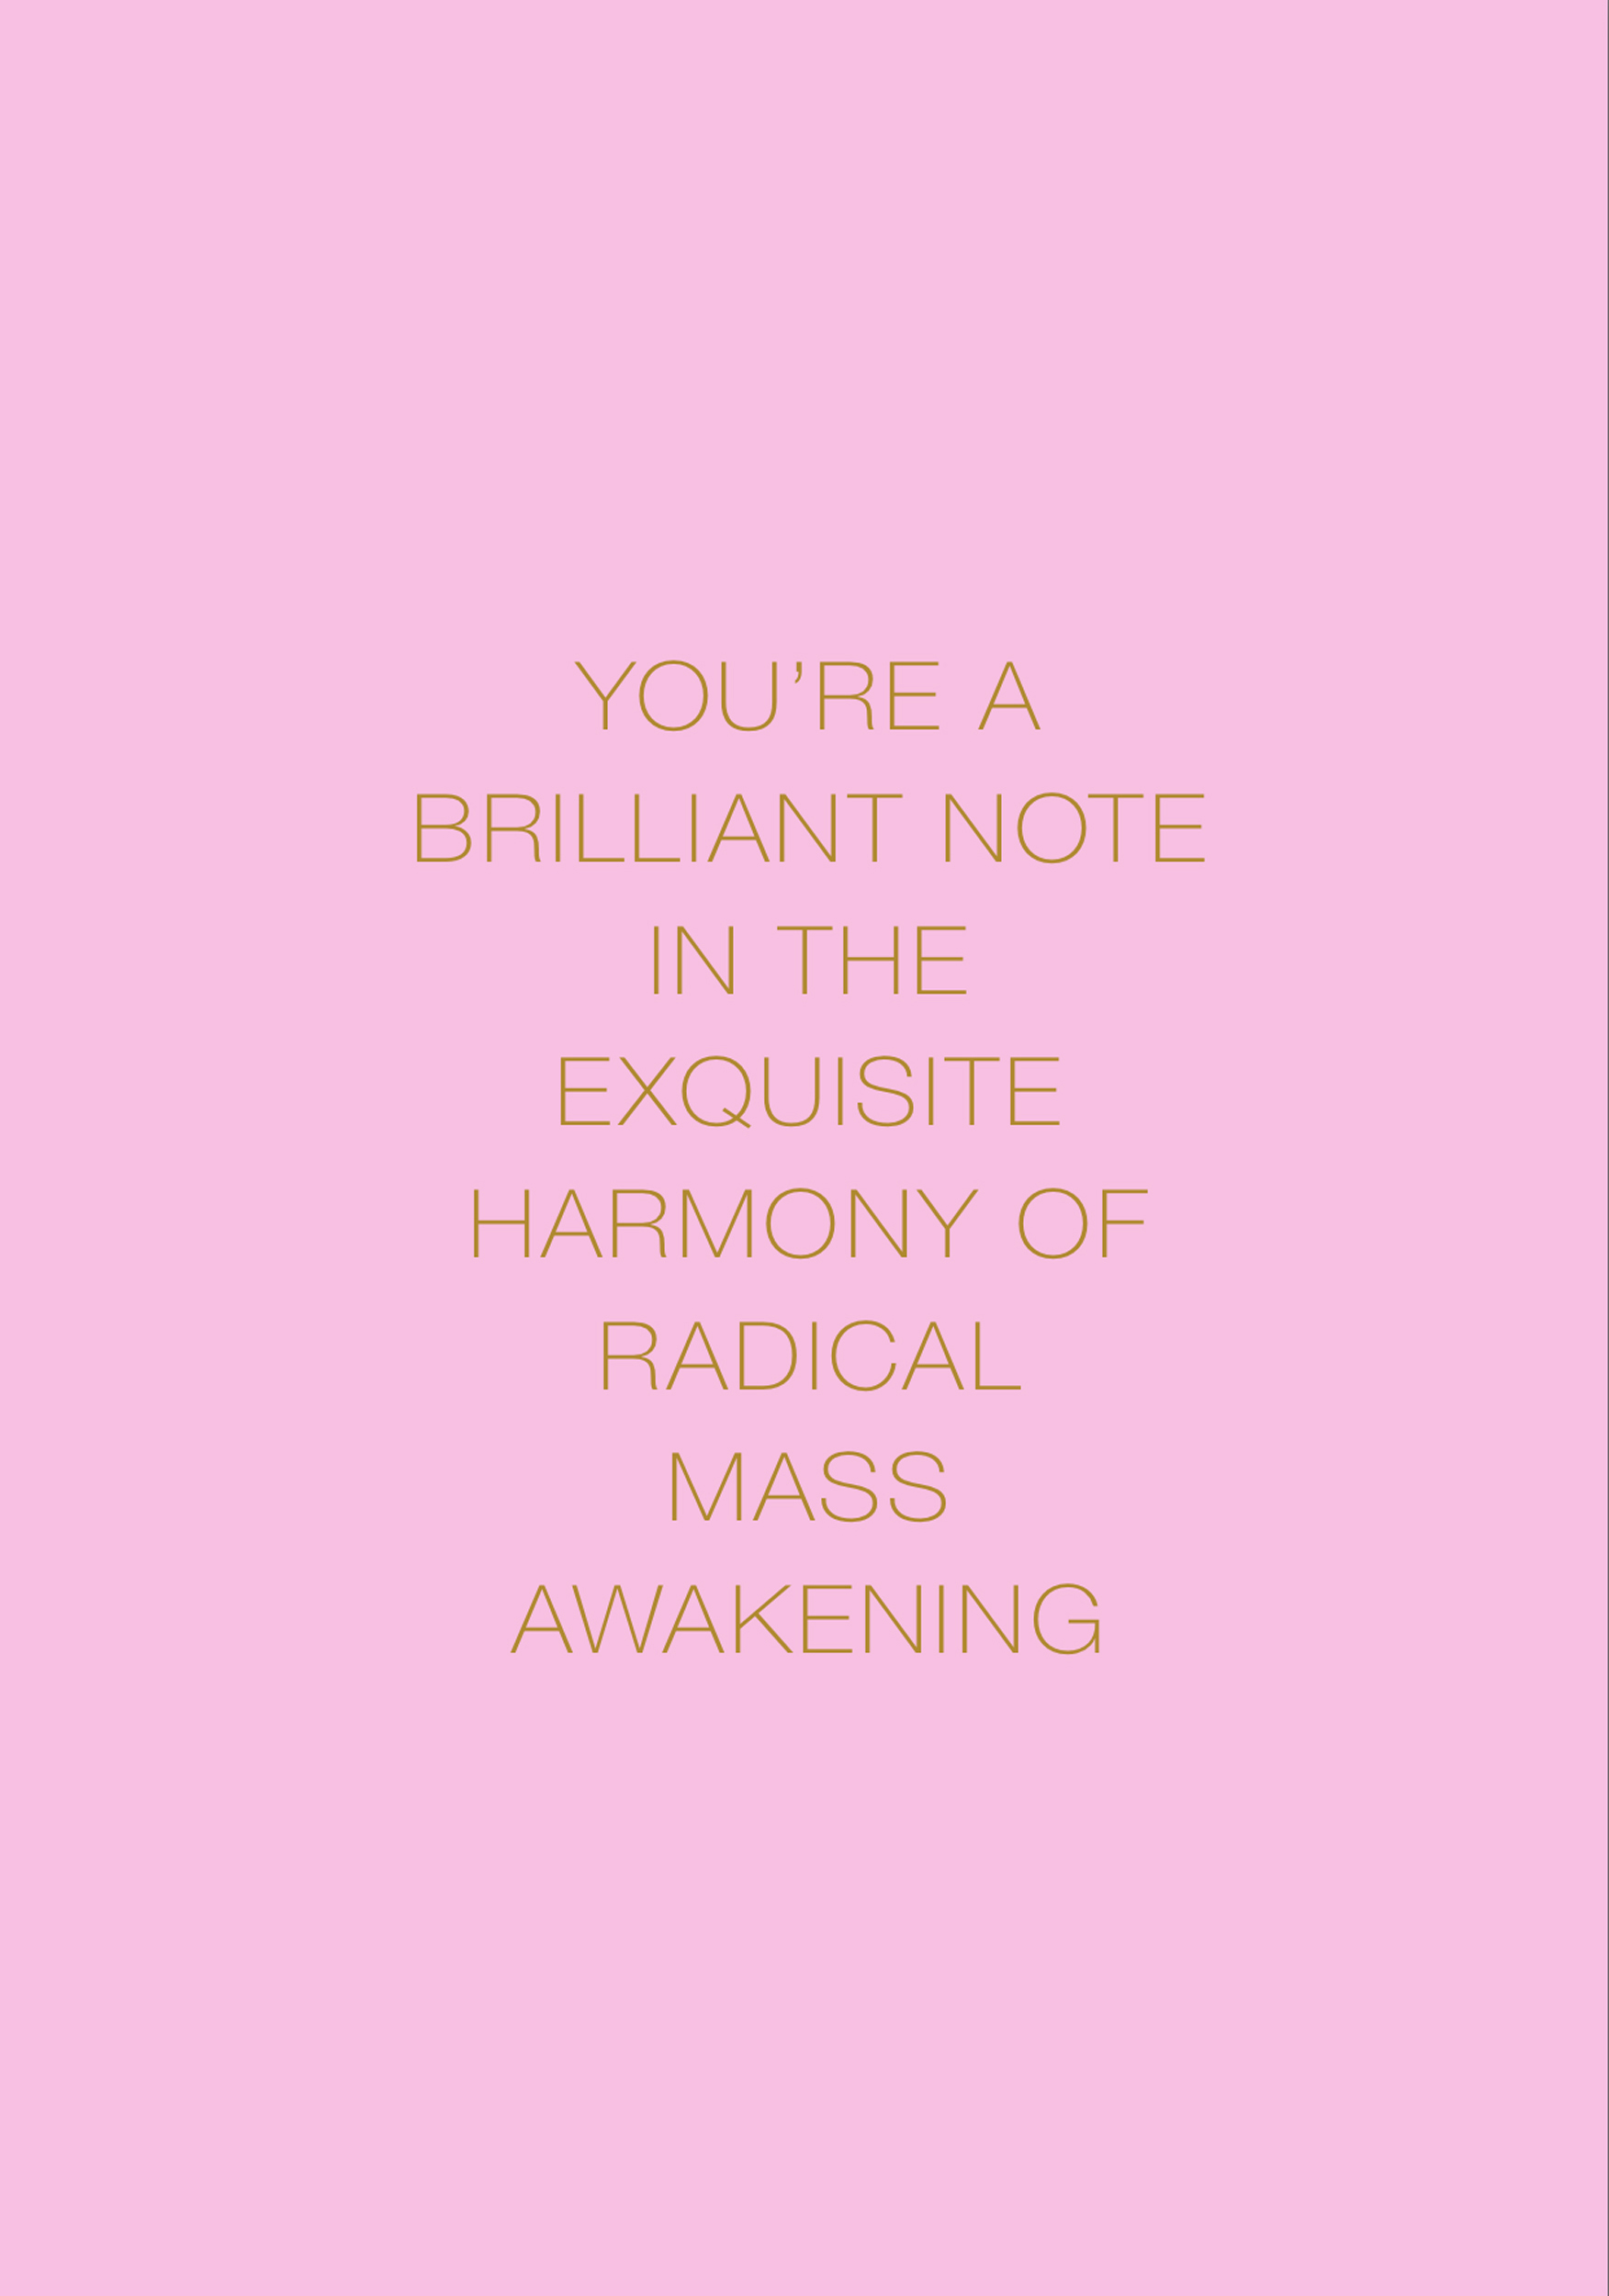 Awakening Mantra: You're a Brilliant Note in the Exquisite Harmony of Radical Mass Awakening